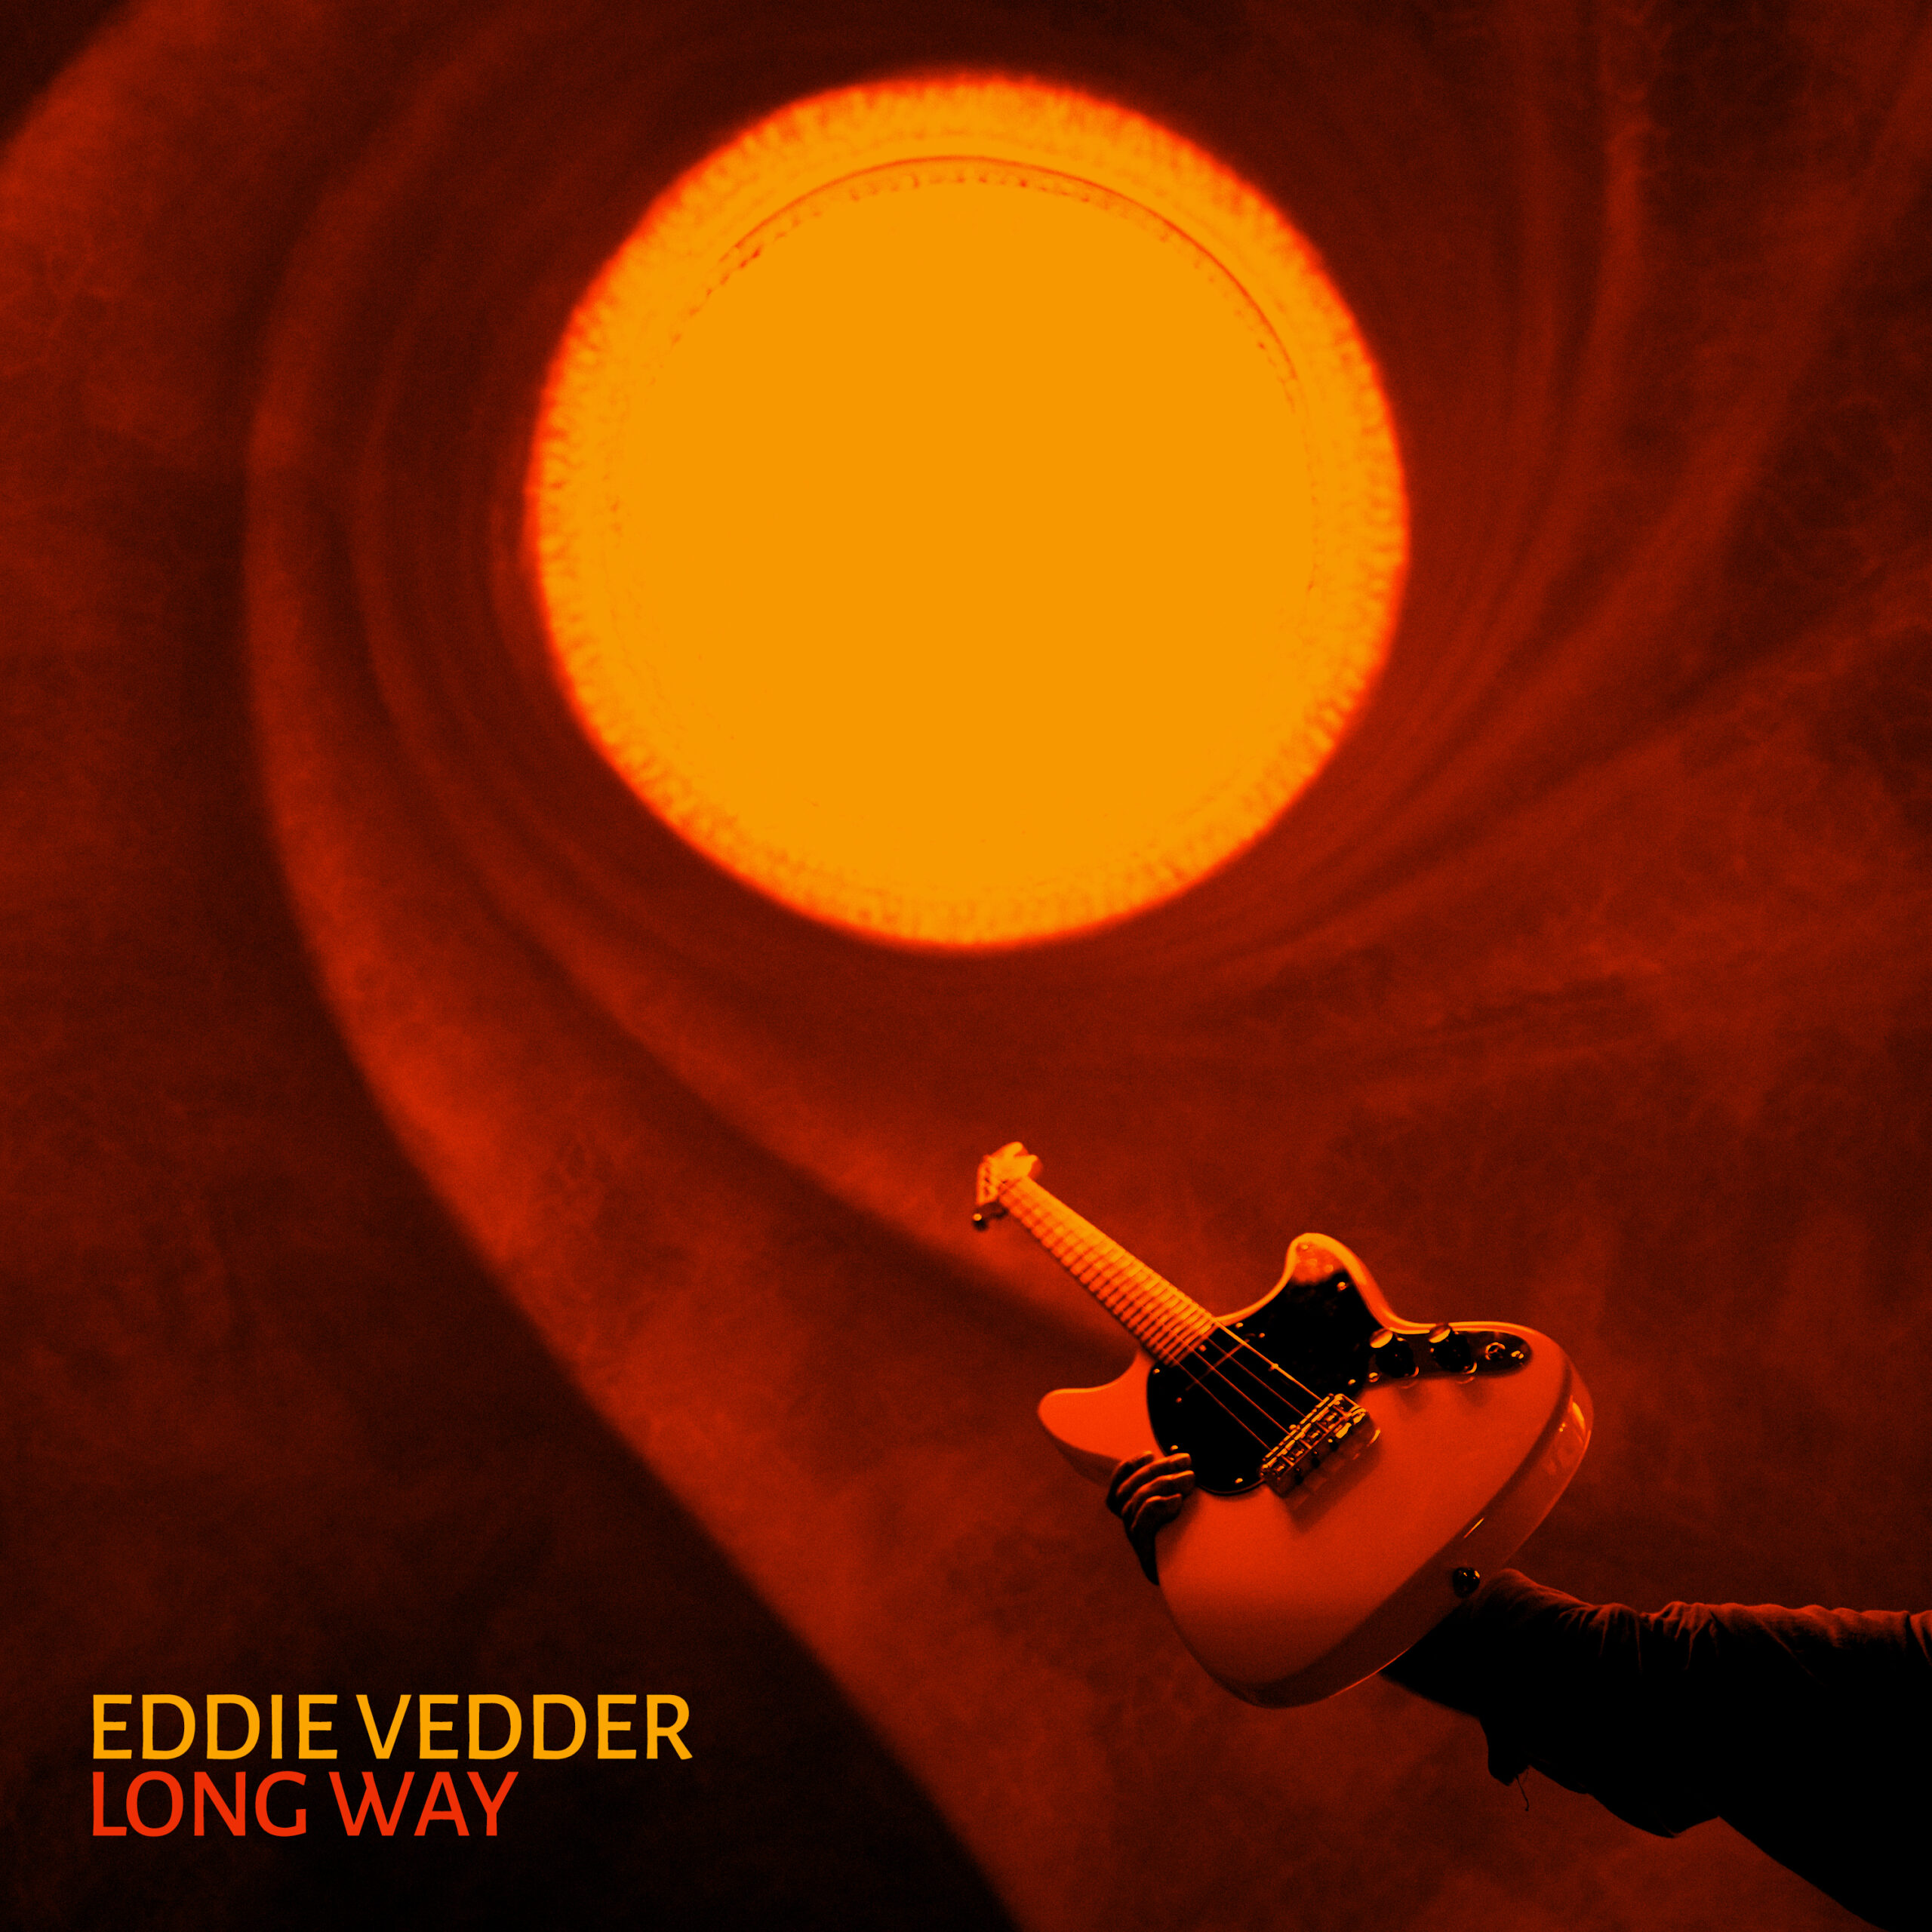 Eddie Vedder Long Way via Republic Records for use by 360 Magazine